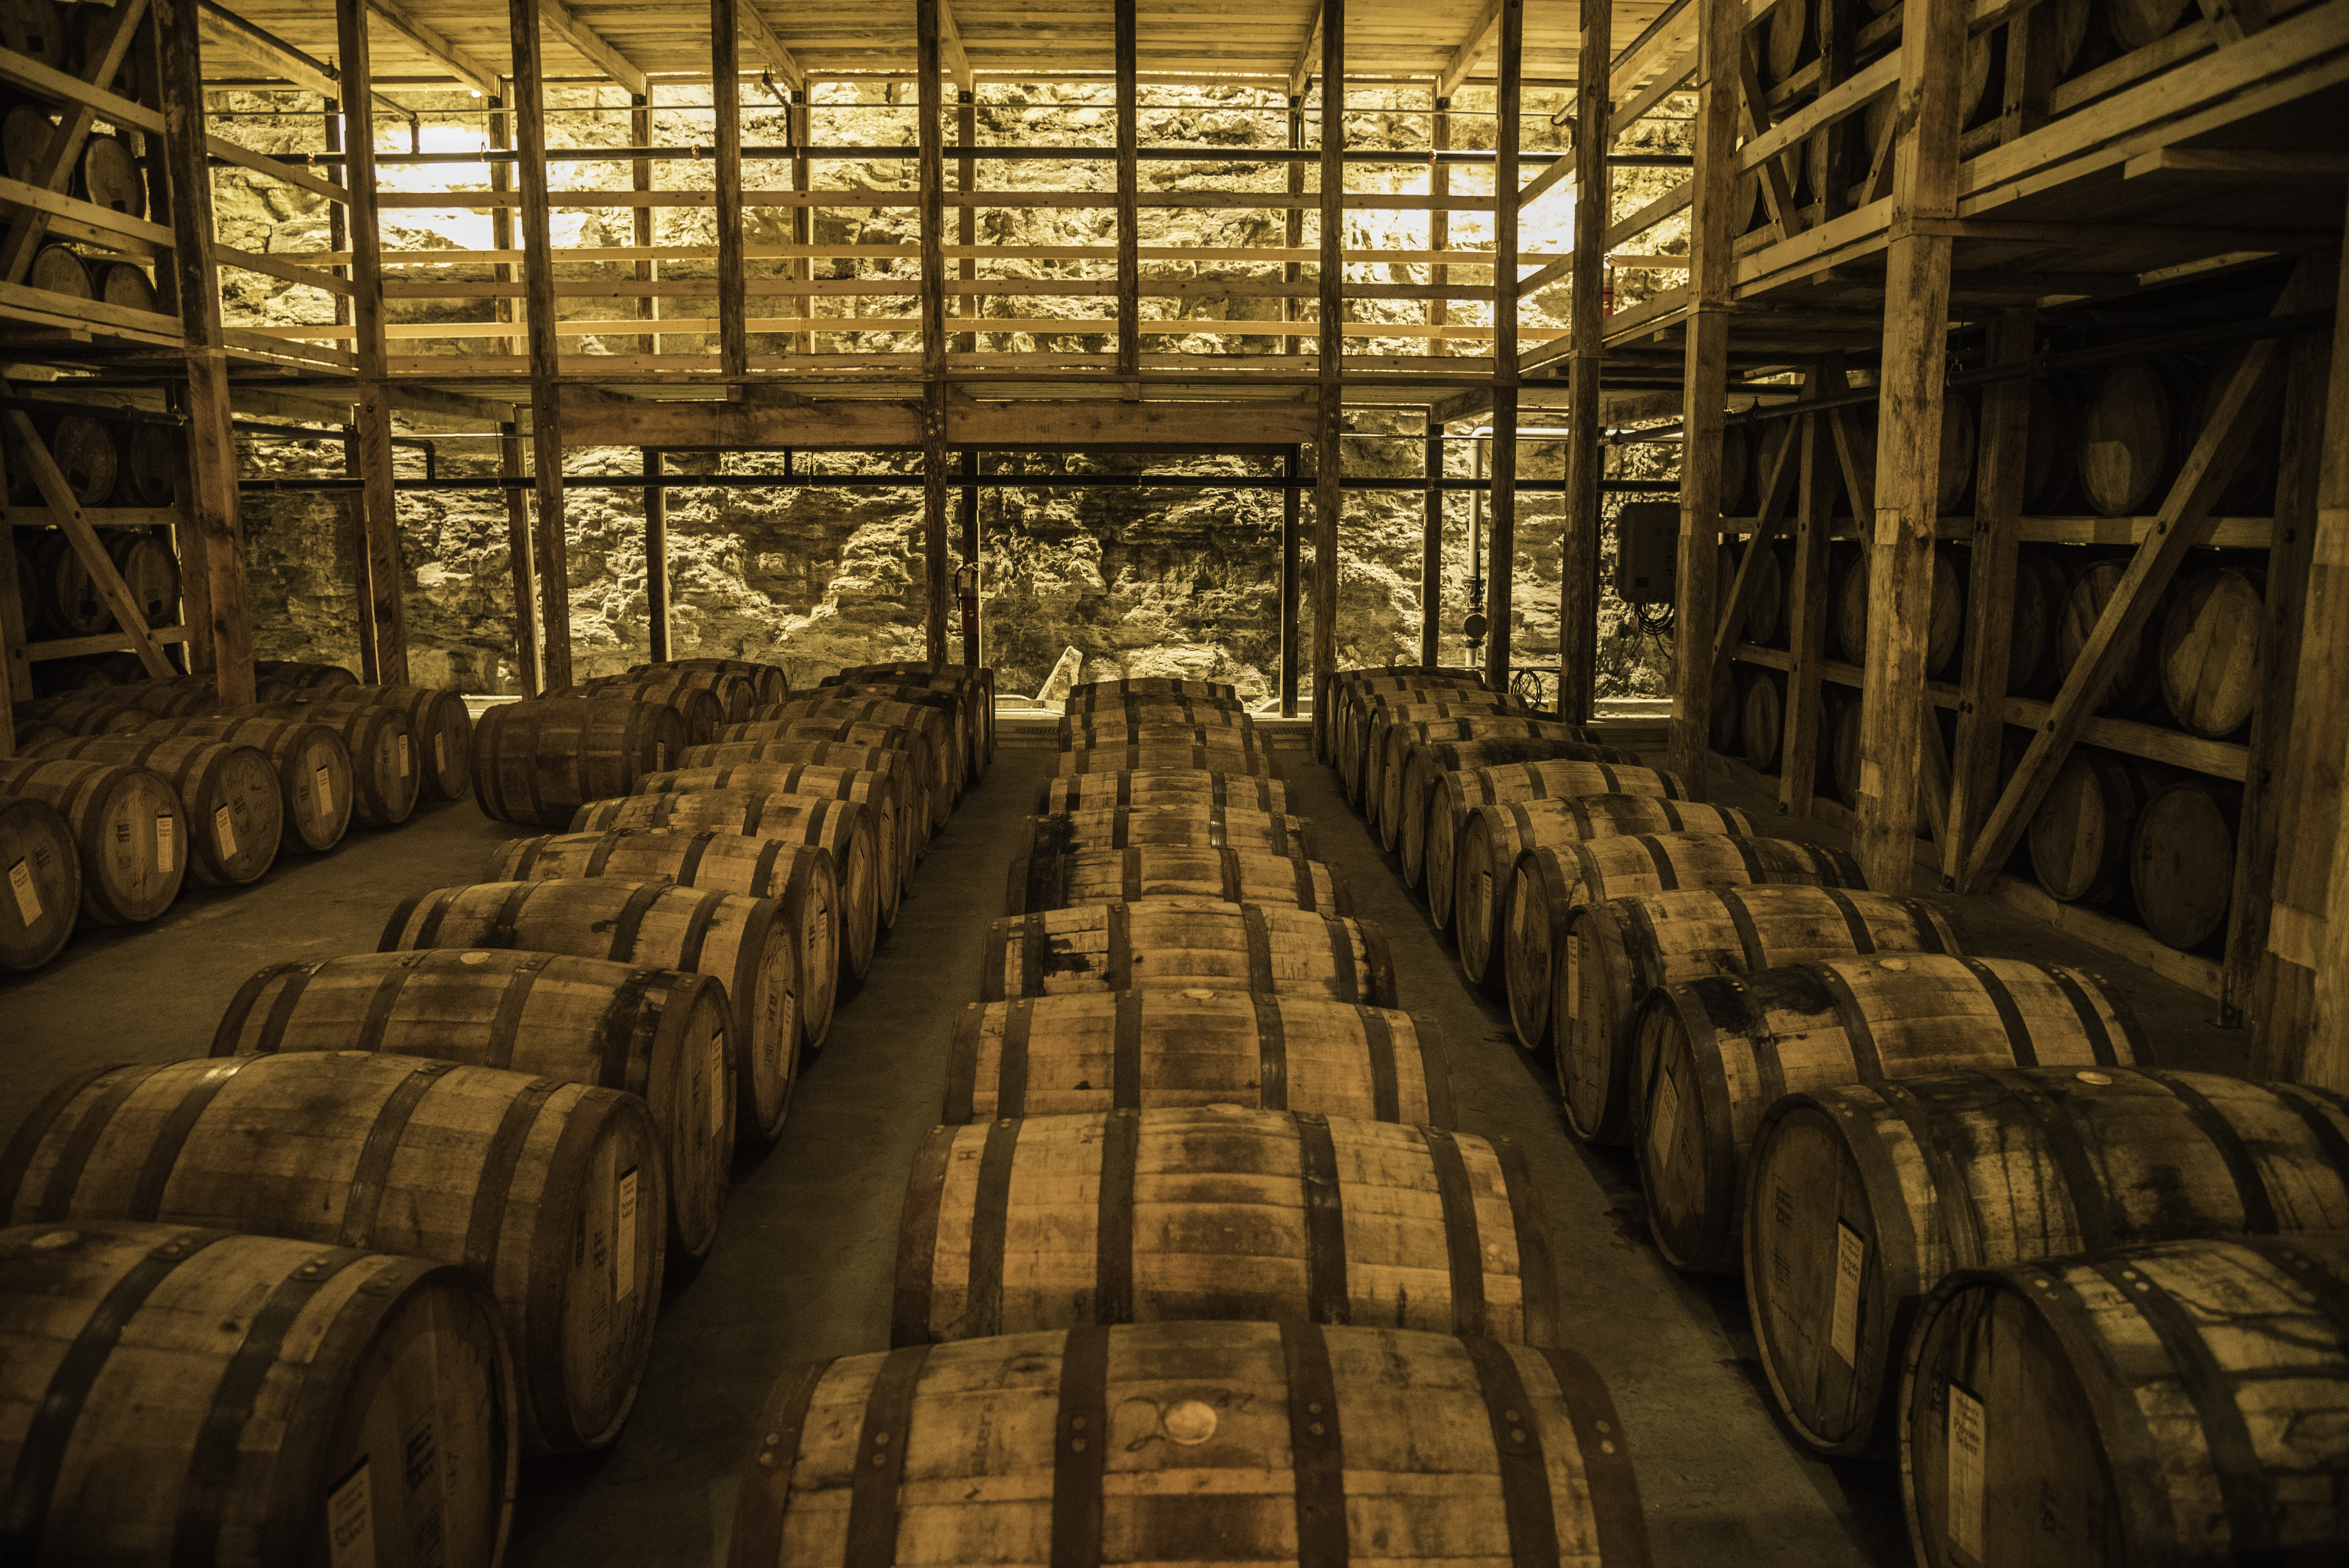 Barrels of Whiskey in the storage Room image  Free stock